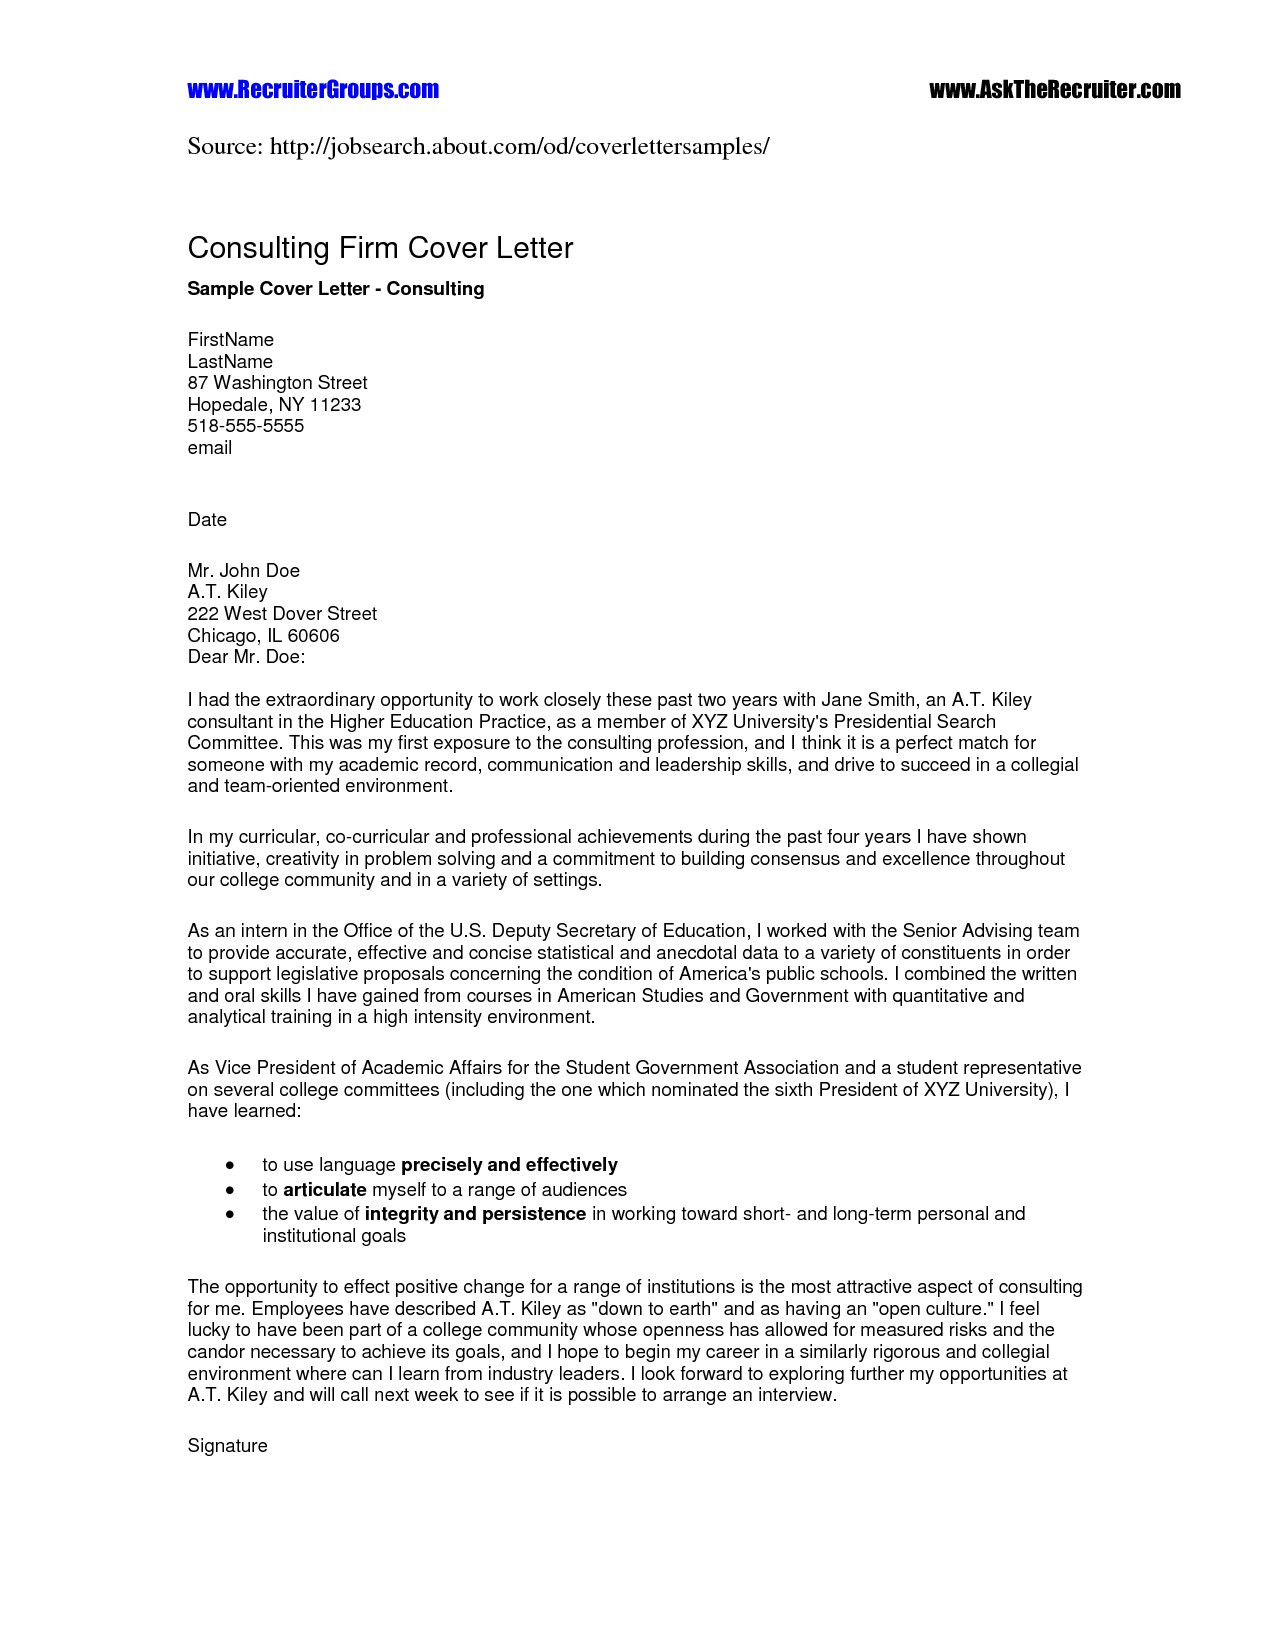 Medical Consult Letter Template - Medical Sales Resume Examples Inspirational Security Job Cover